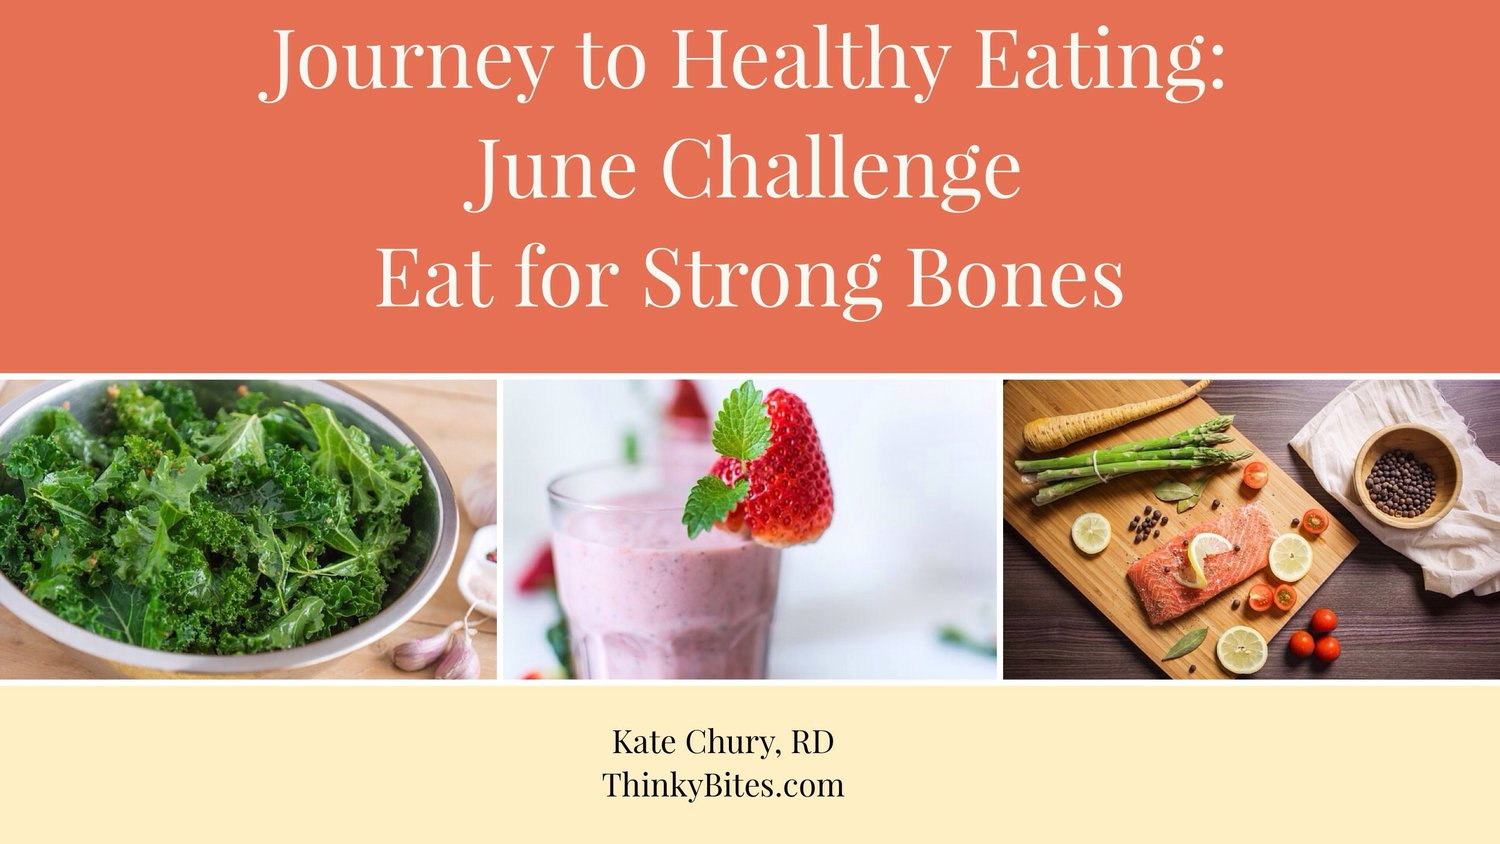 Journey to Healthy Eating 2017 - June Edition